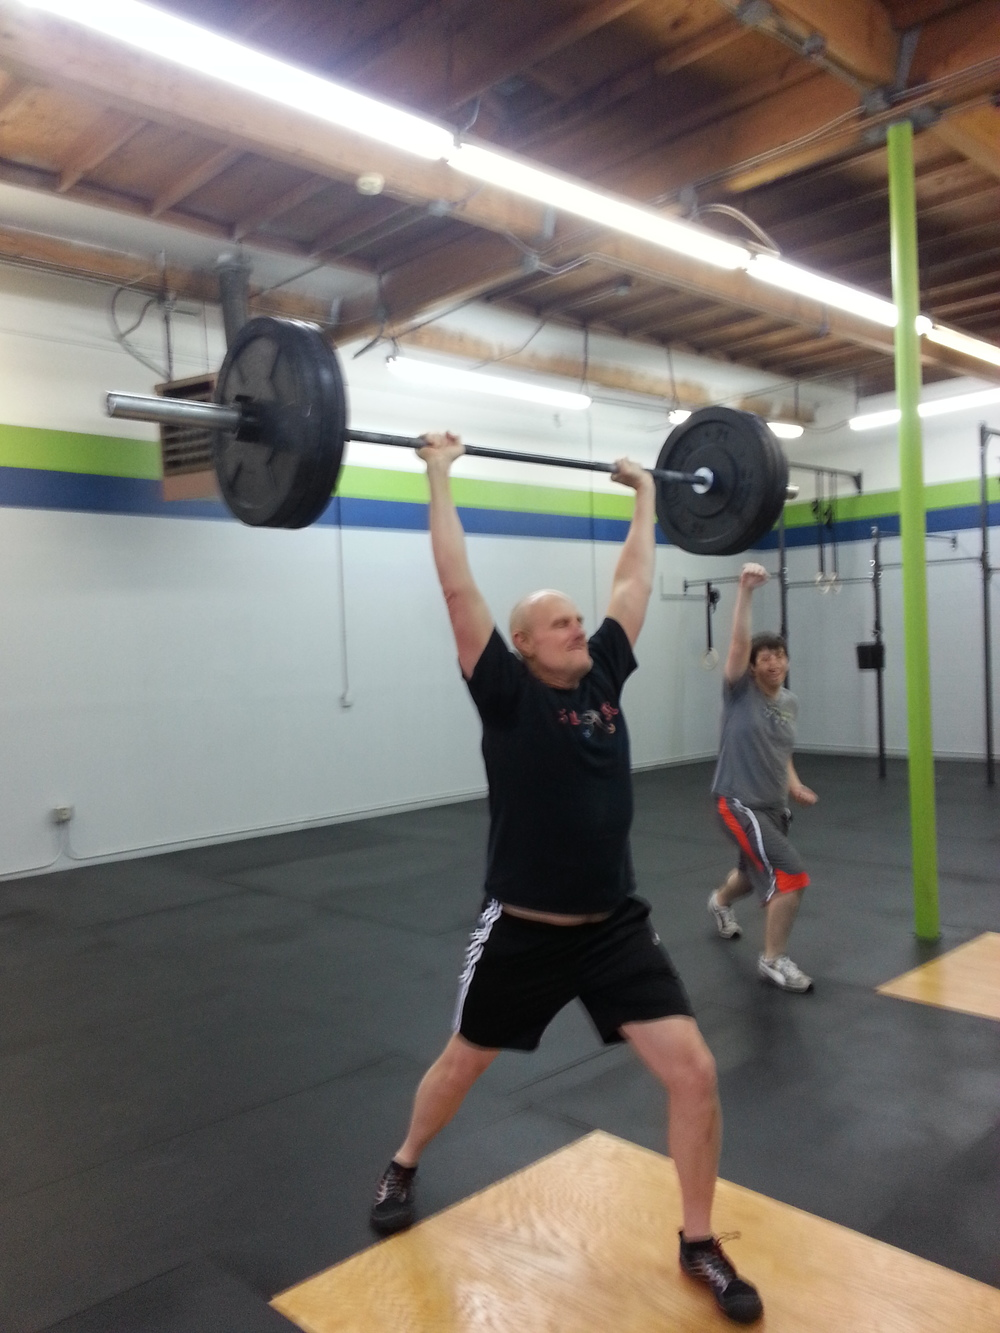 Steve hitting a PR Jerk, and Phil celebrating in the background.